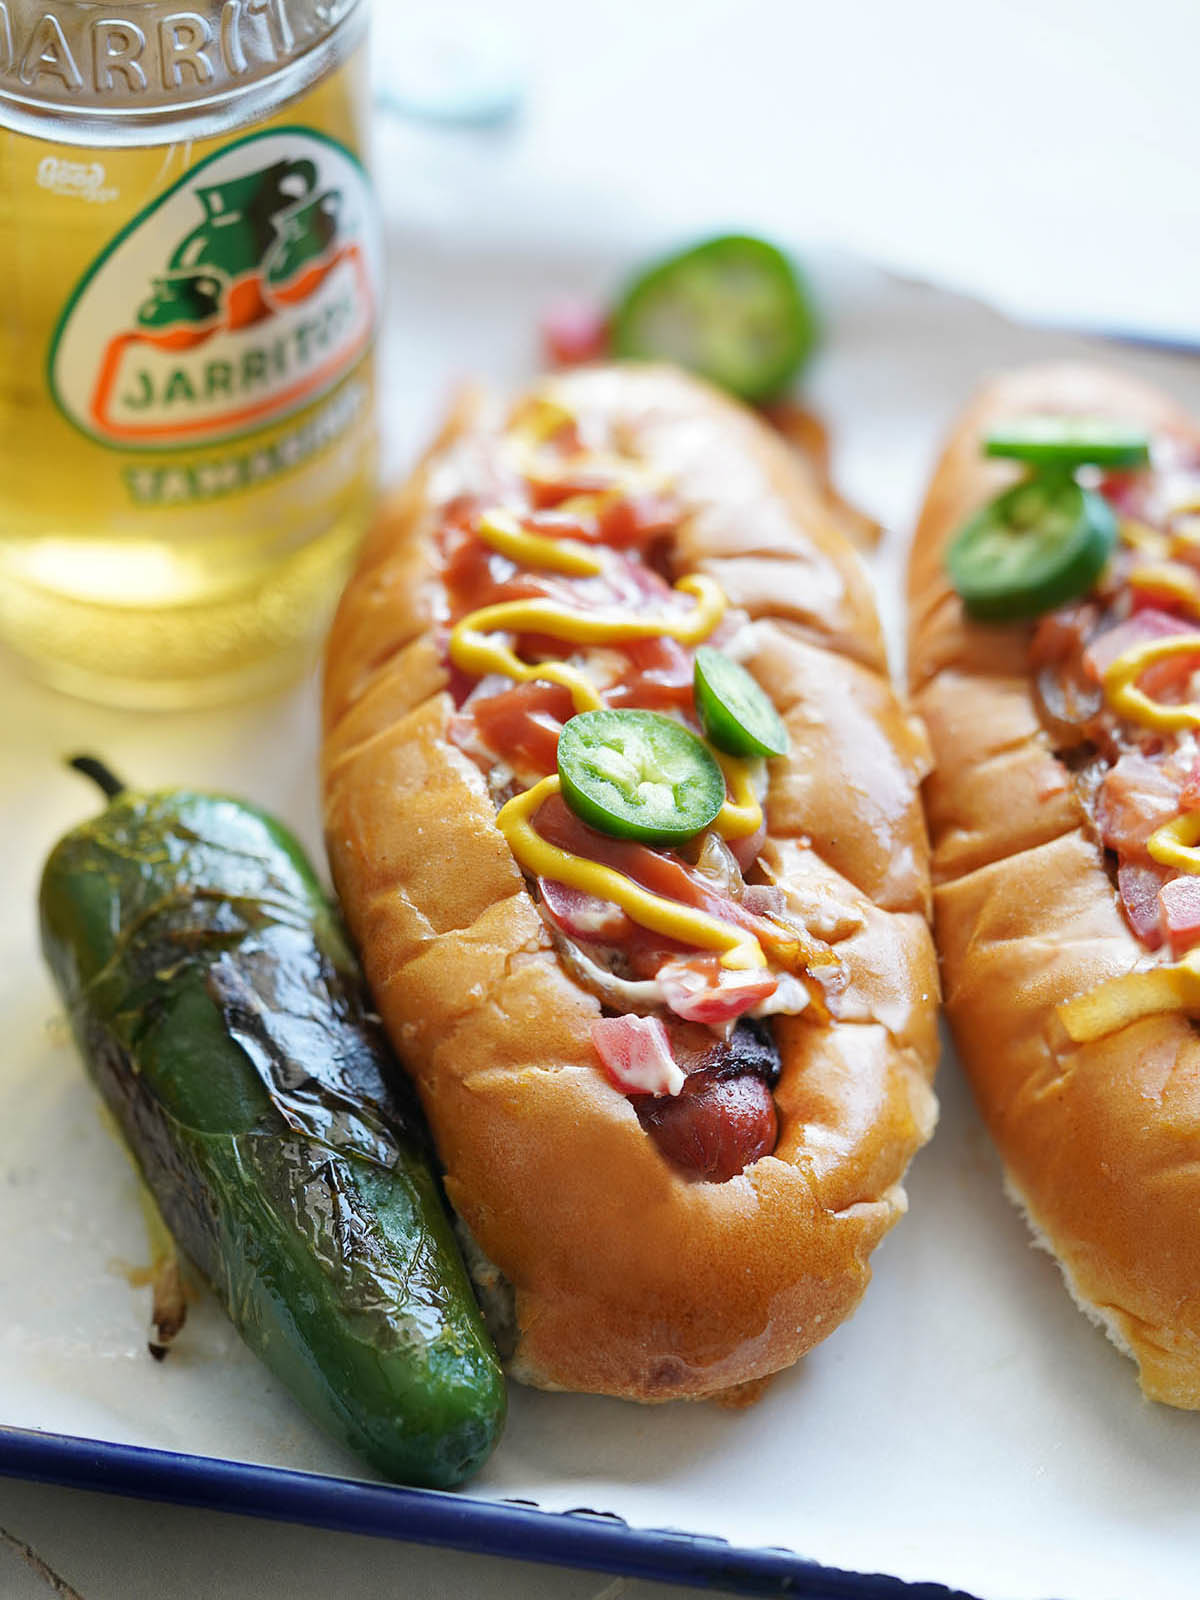 Two hot dogs with a roasted jalapeño on the side